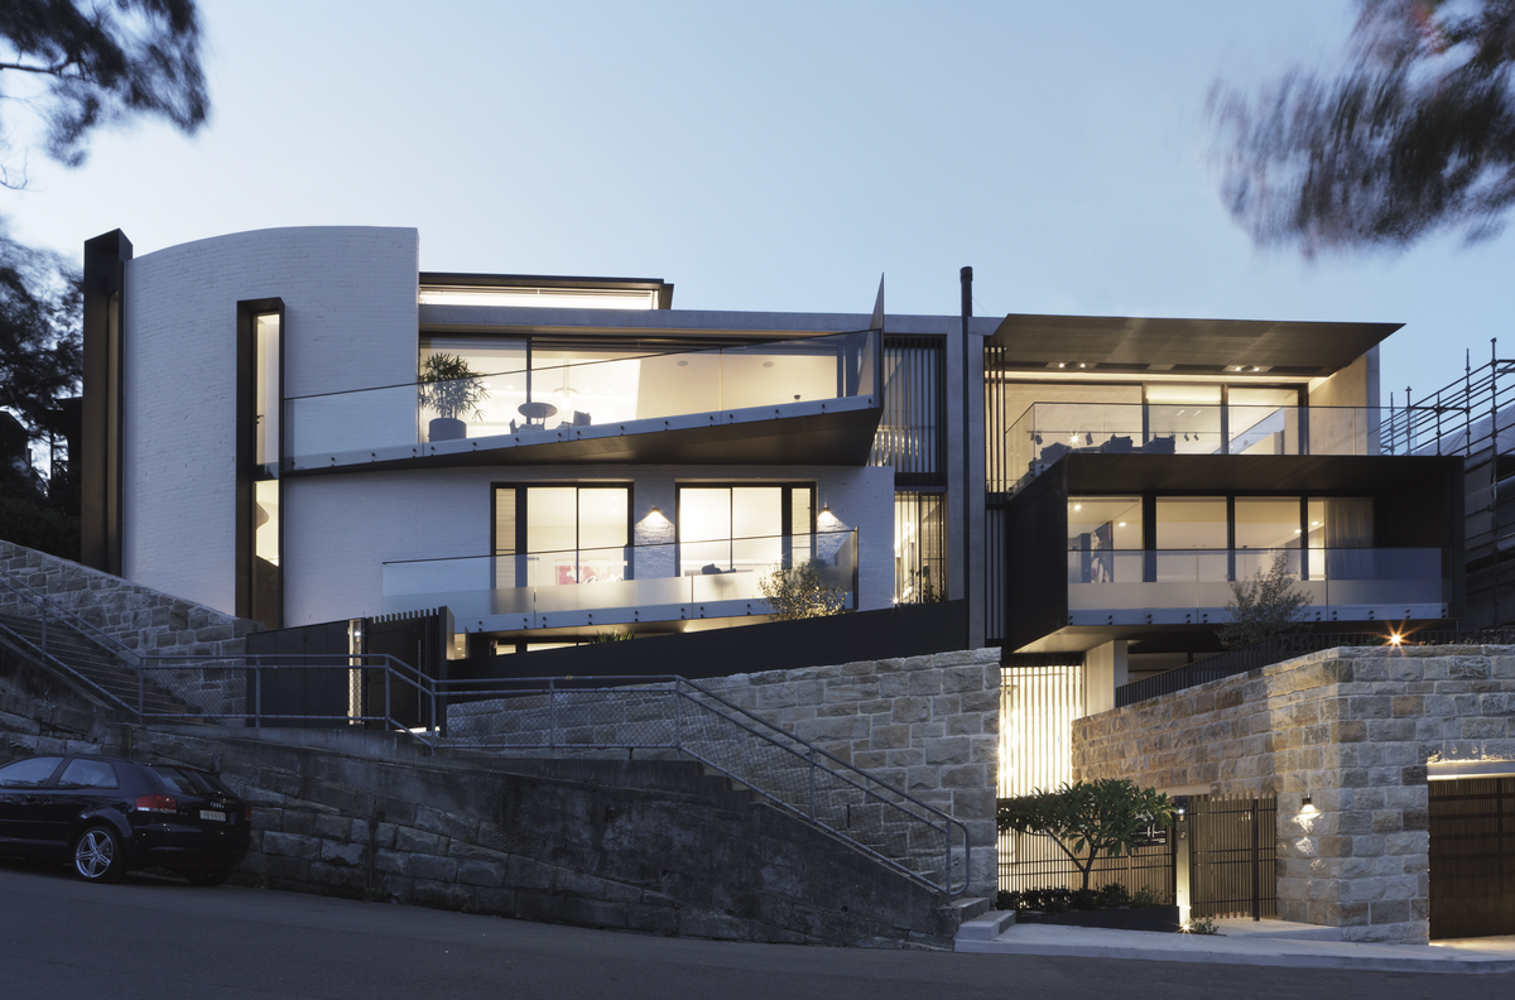 twin-houses-architecture-saville-isaacs-the-design-emotive-5.jpg